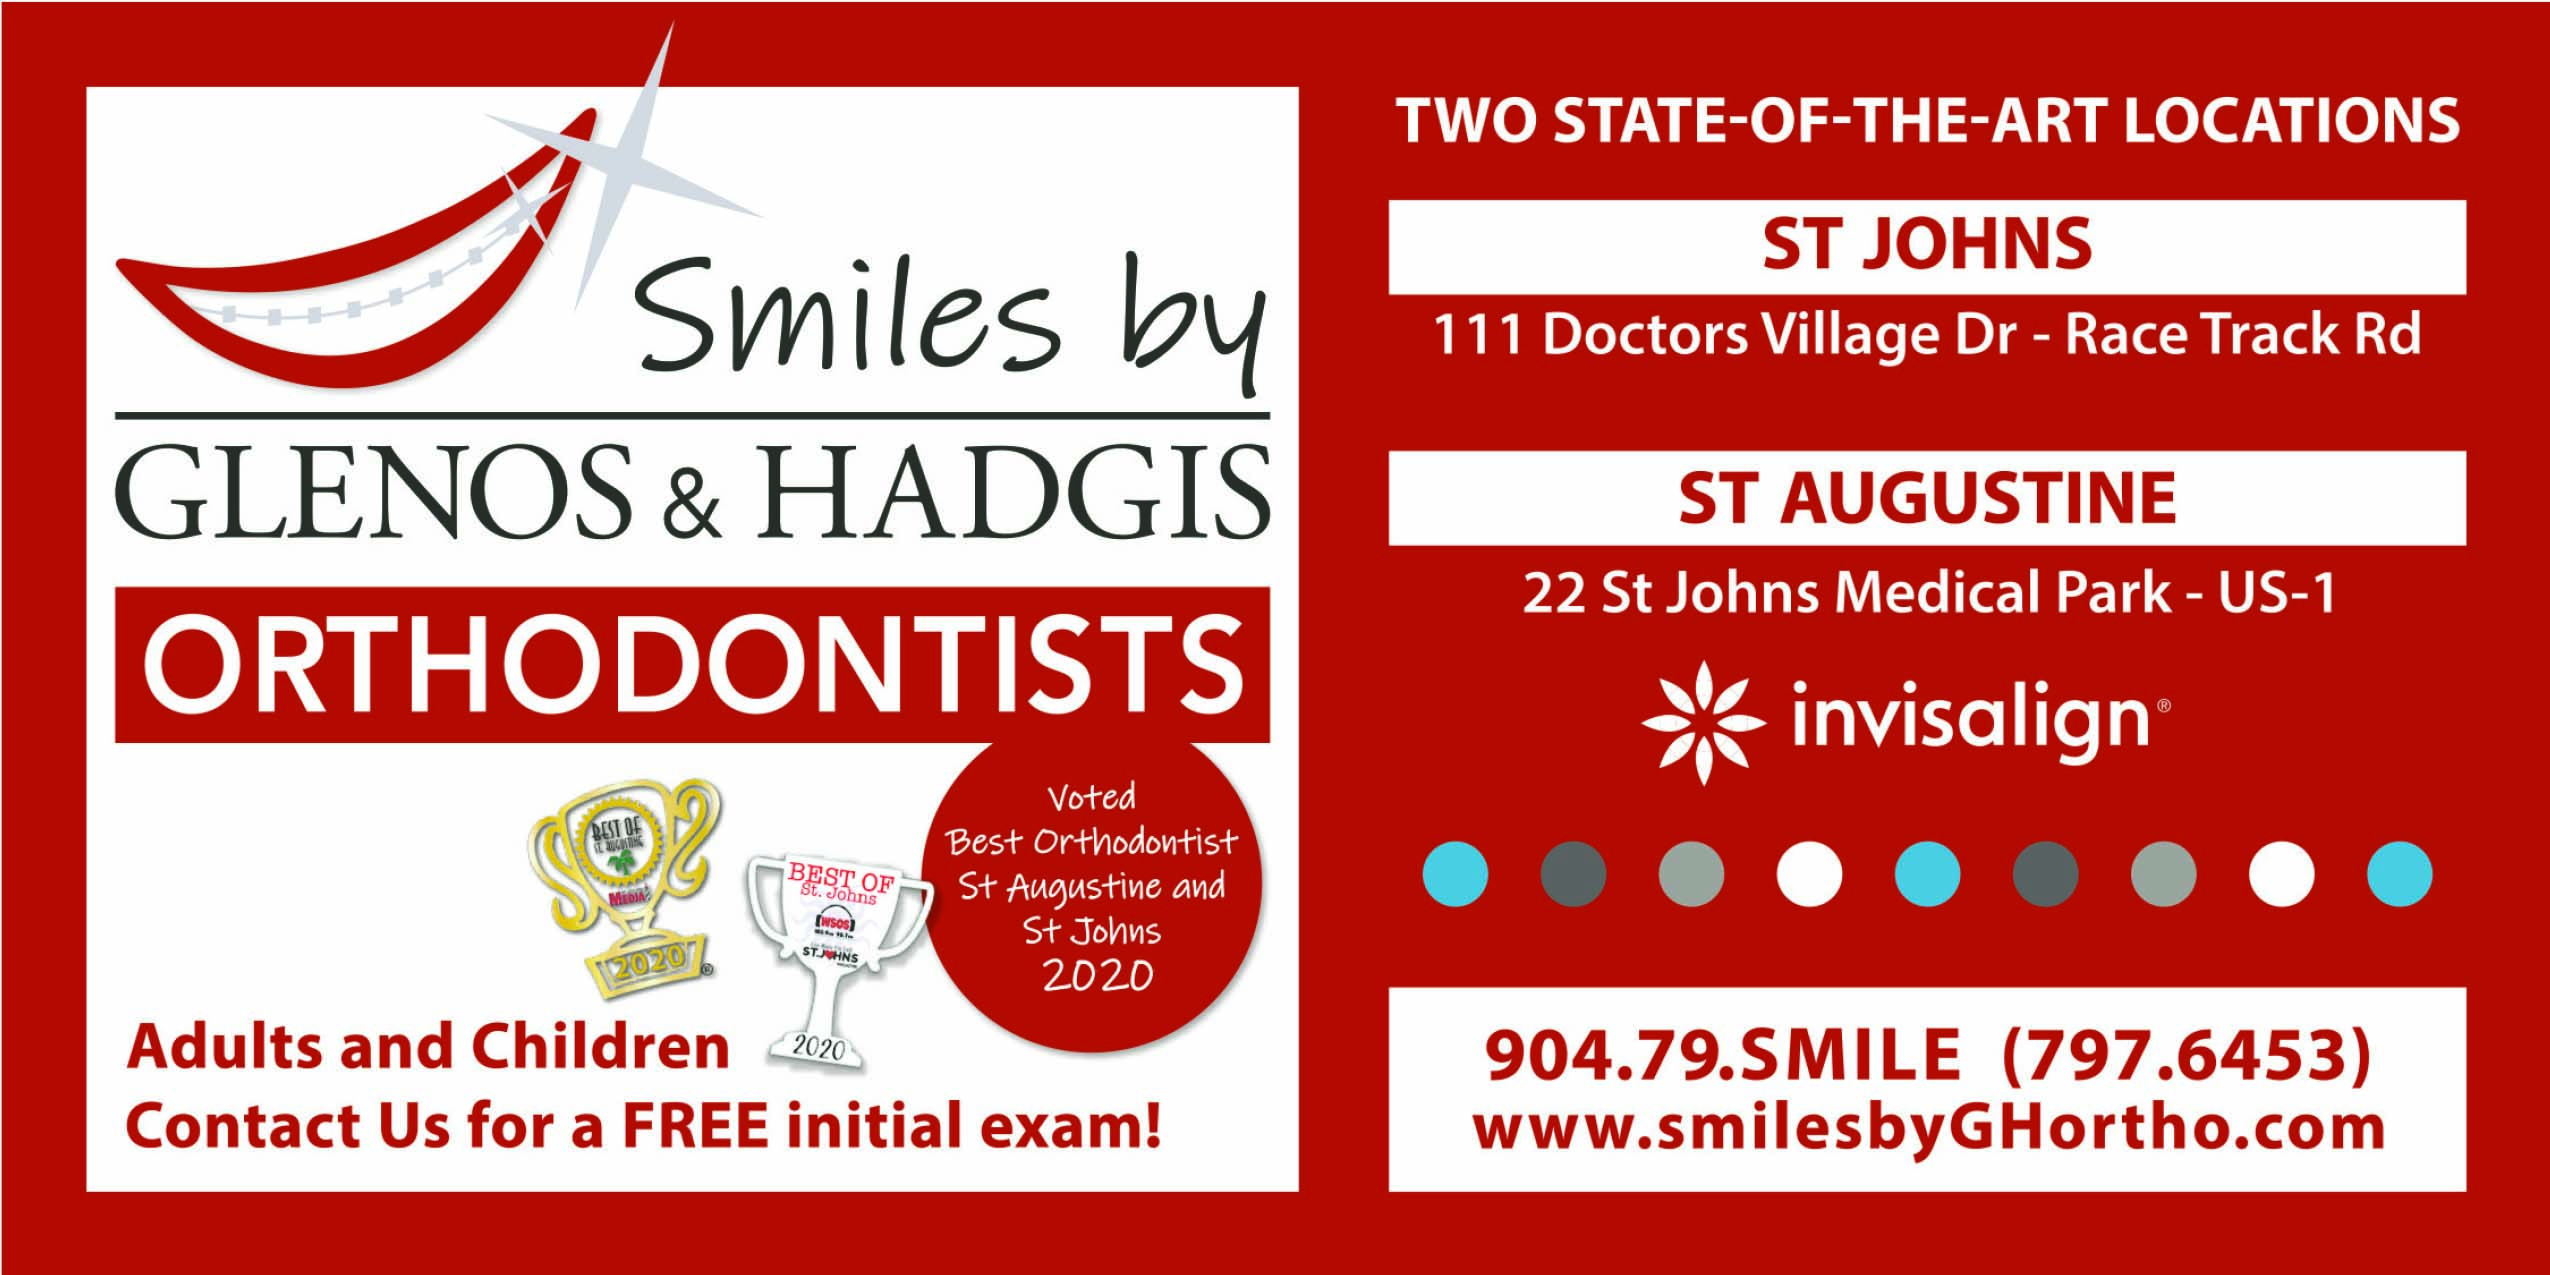 Smiles by Glenos & Hadfic Orthodontists